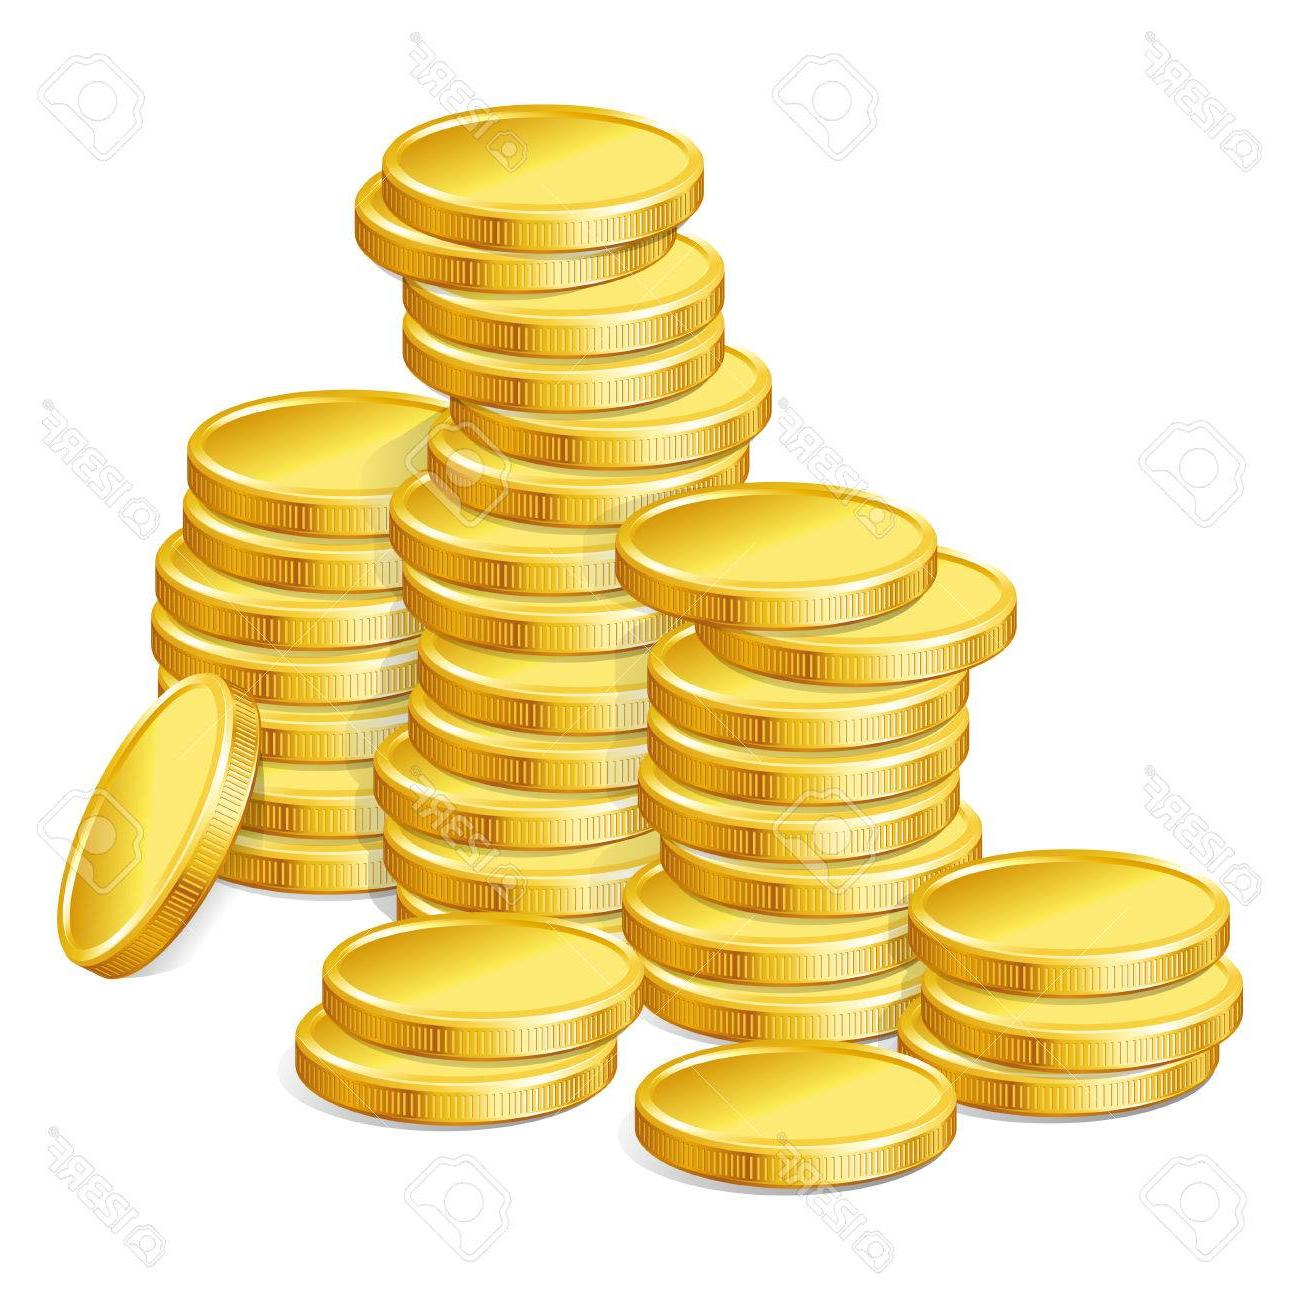 Coin clipart gold piece, Coin gold piece Transparent FREE.